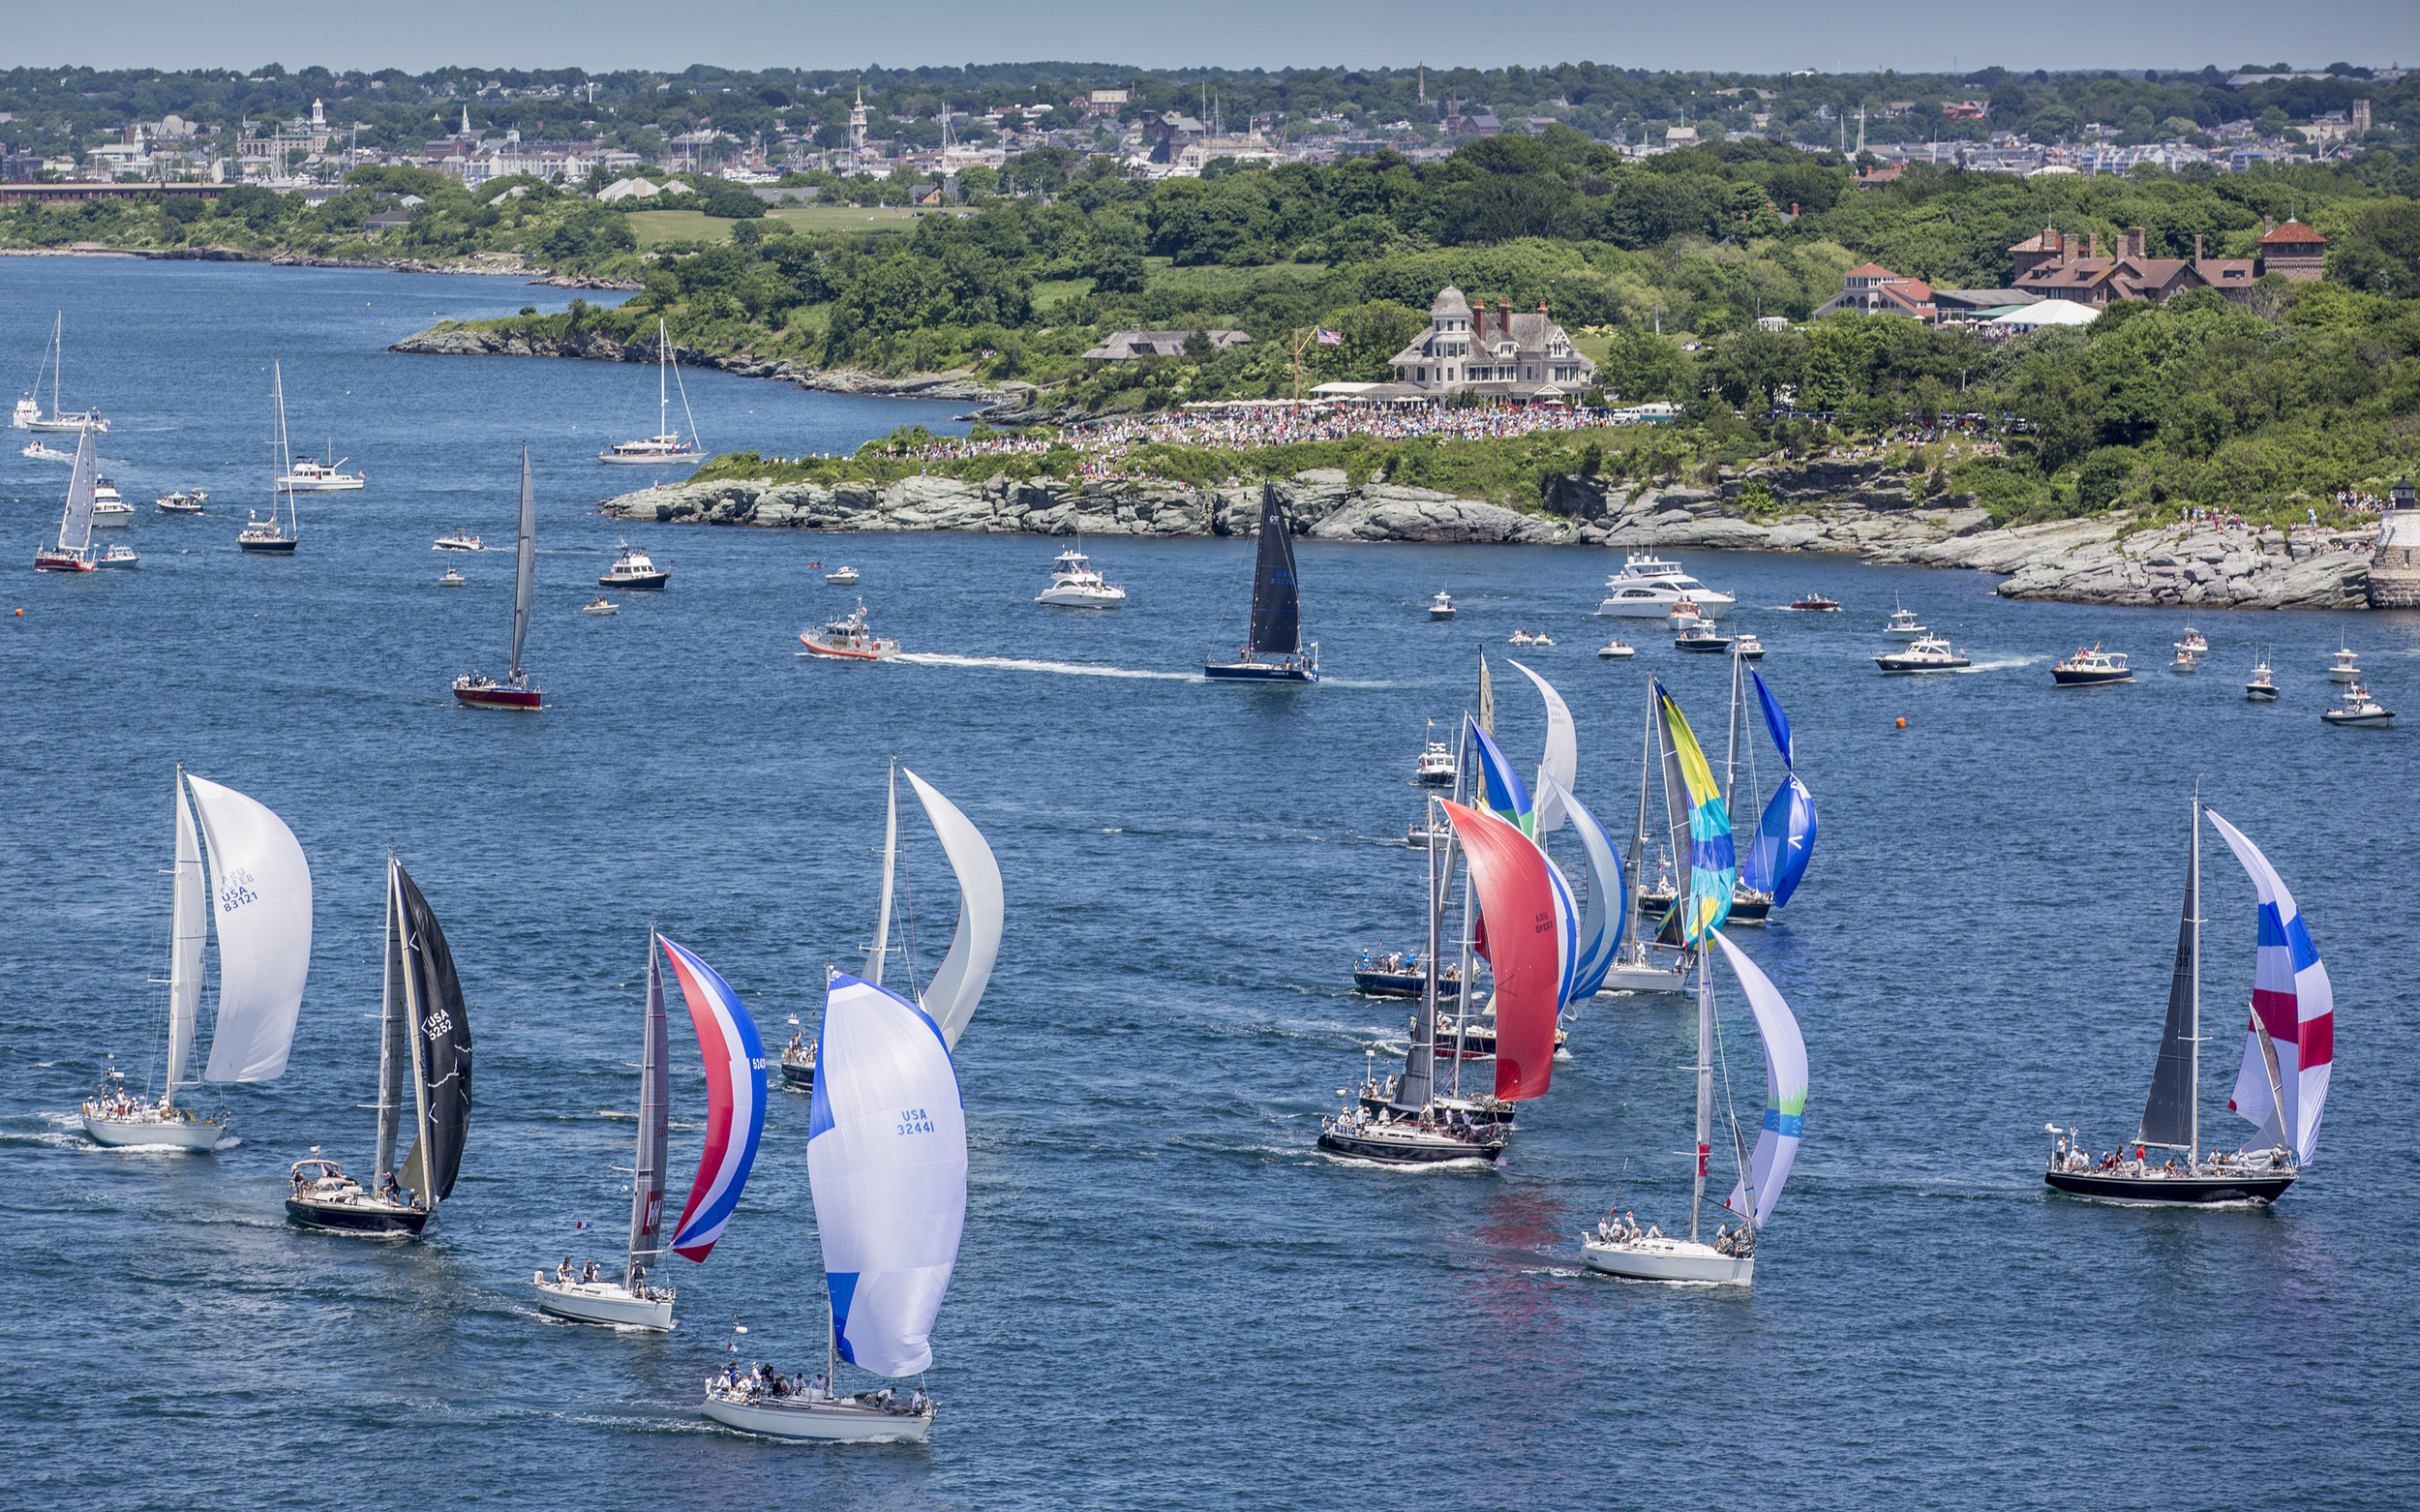 NEWPORT BERMUDA FLEET START OFF CASTLE HILL IN NEWPORT, R.I.  (PHOTO CREDIT: DANIEL FORSTER/PPL)